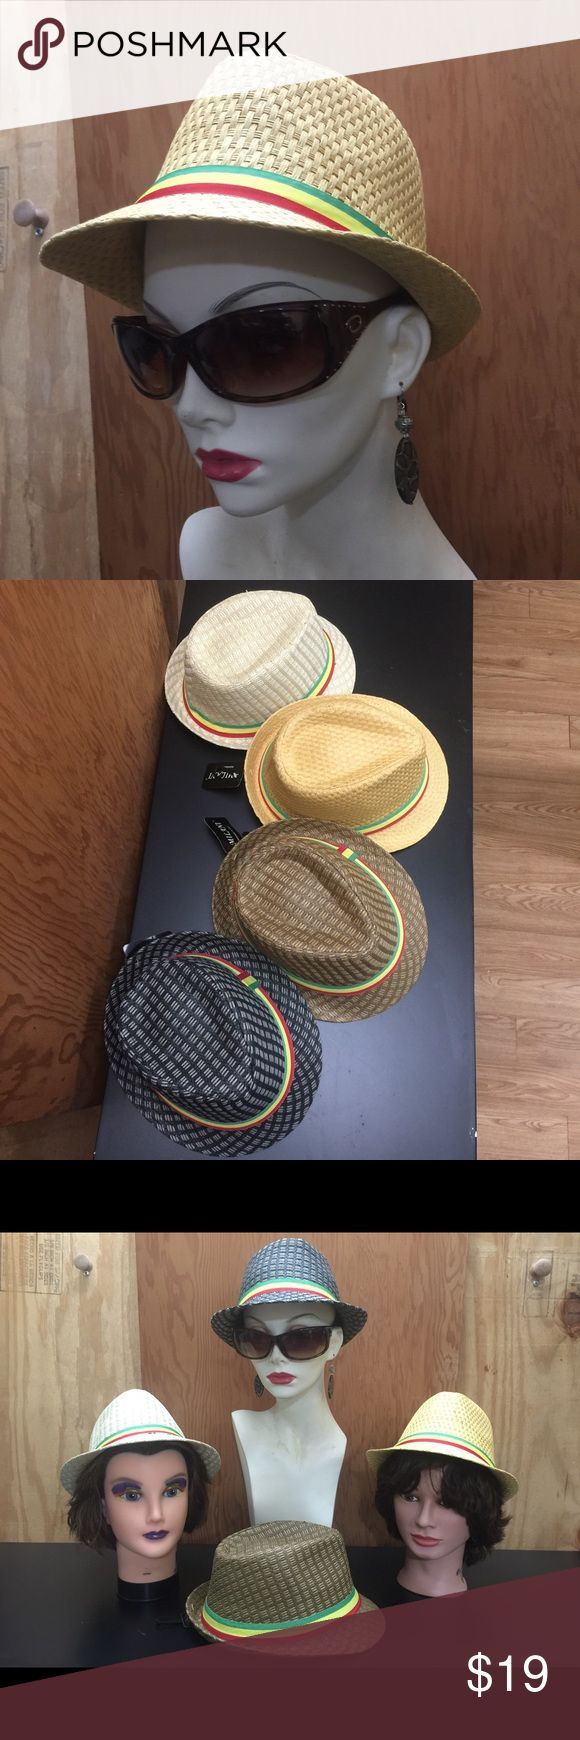 Rasta Fedora Hats (tan/khaki) Elegant unisex Rasta Fedora hat 🎩 light weight, and making a statement without a word. For them lazy, hazy days of summer. Designed in Italy 🇮🇹 Rasta style, two tone. 100% Straw Fedora. Check out other colors and sizes in my closet. Milani Accessories Hats